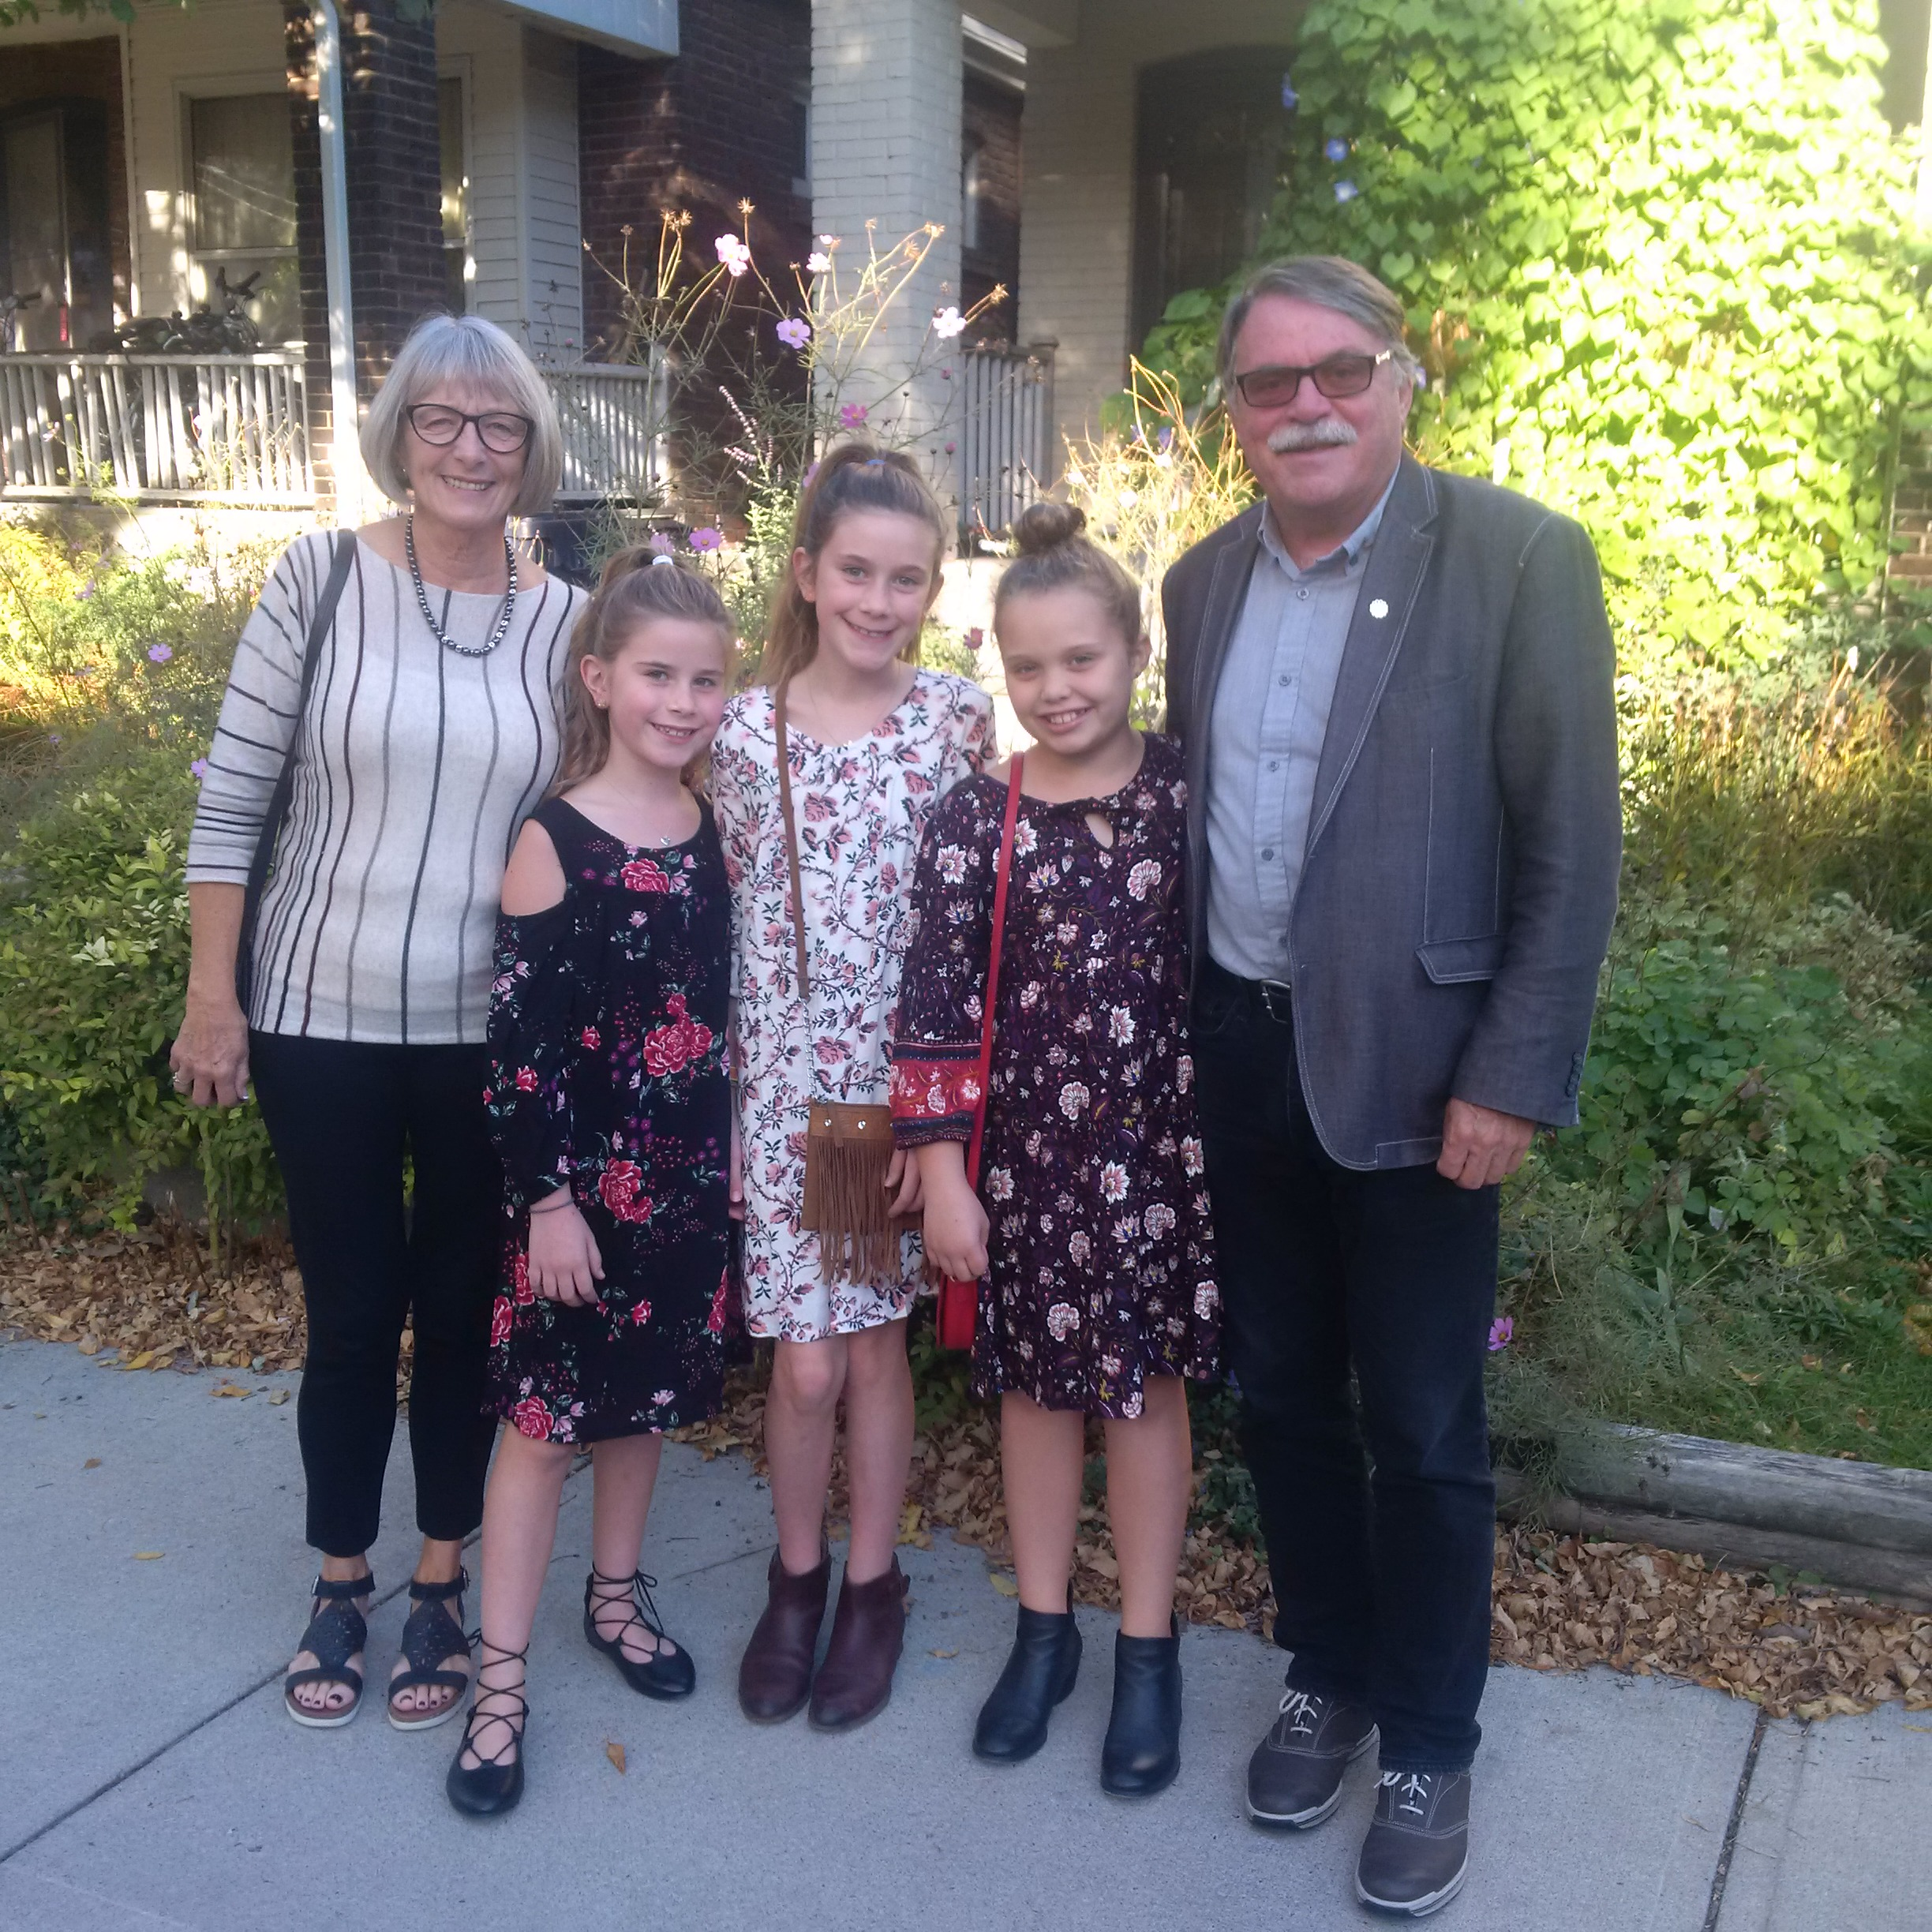 Nanny and Pops with 3 Grand Girls